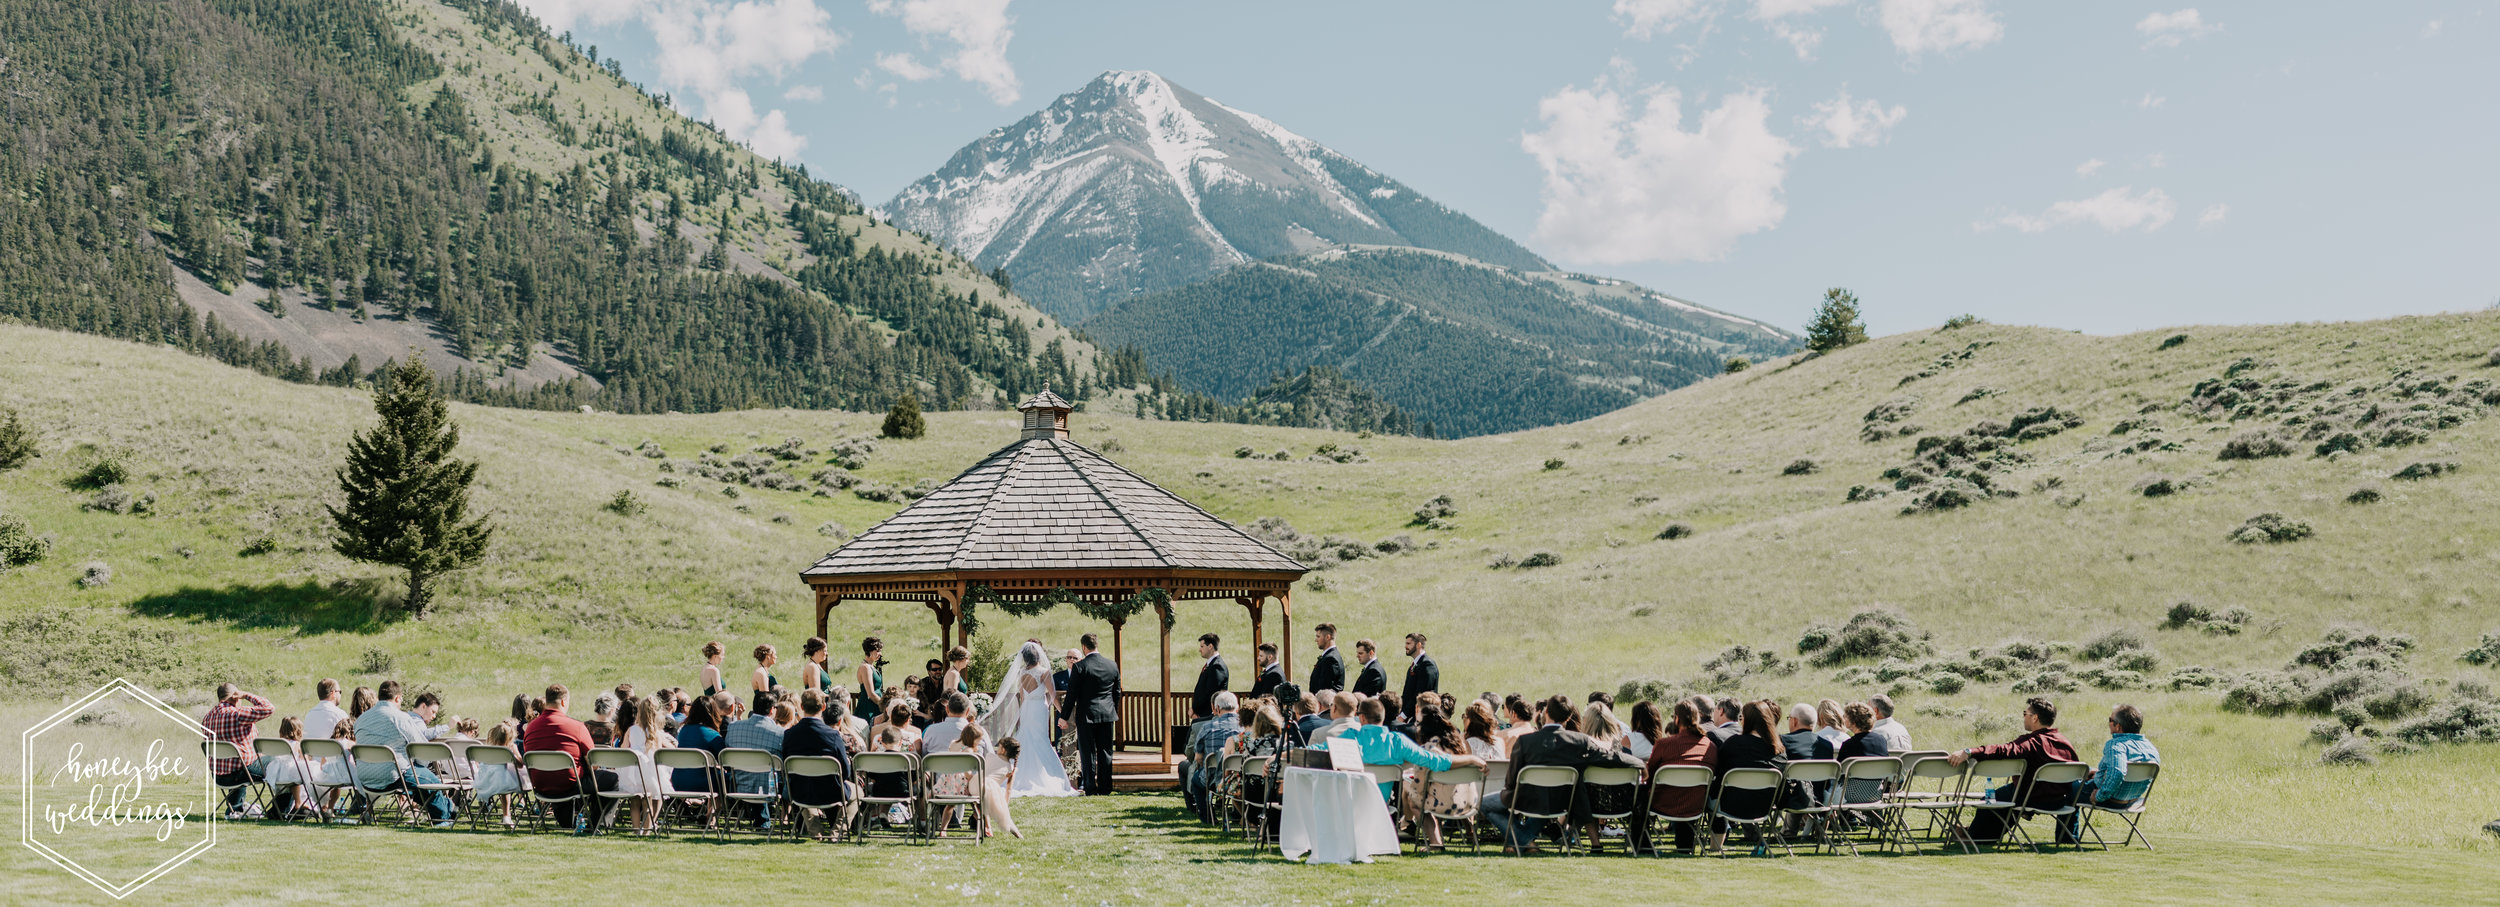 127 Chico Hotsprings Wedding_Bowdino 2018-3447-2-Pano.jpg